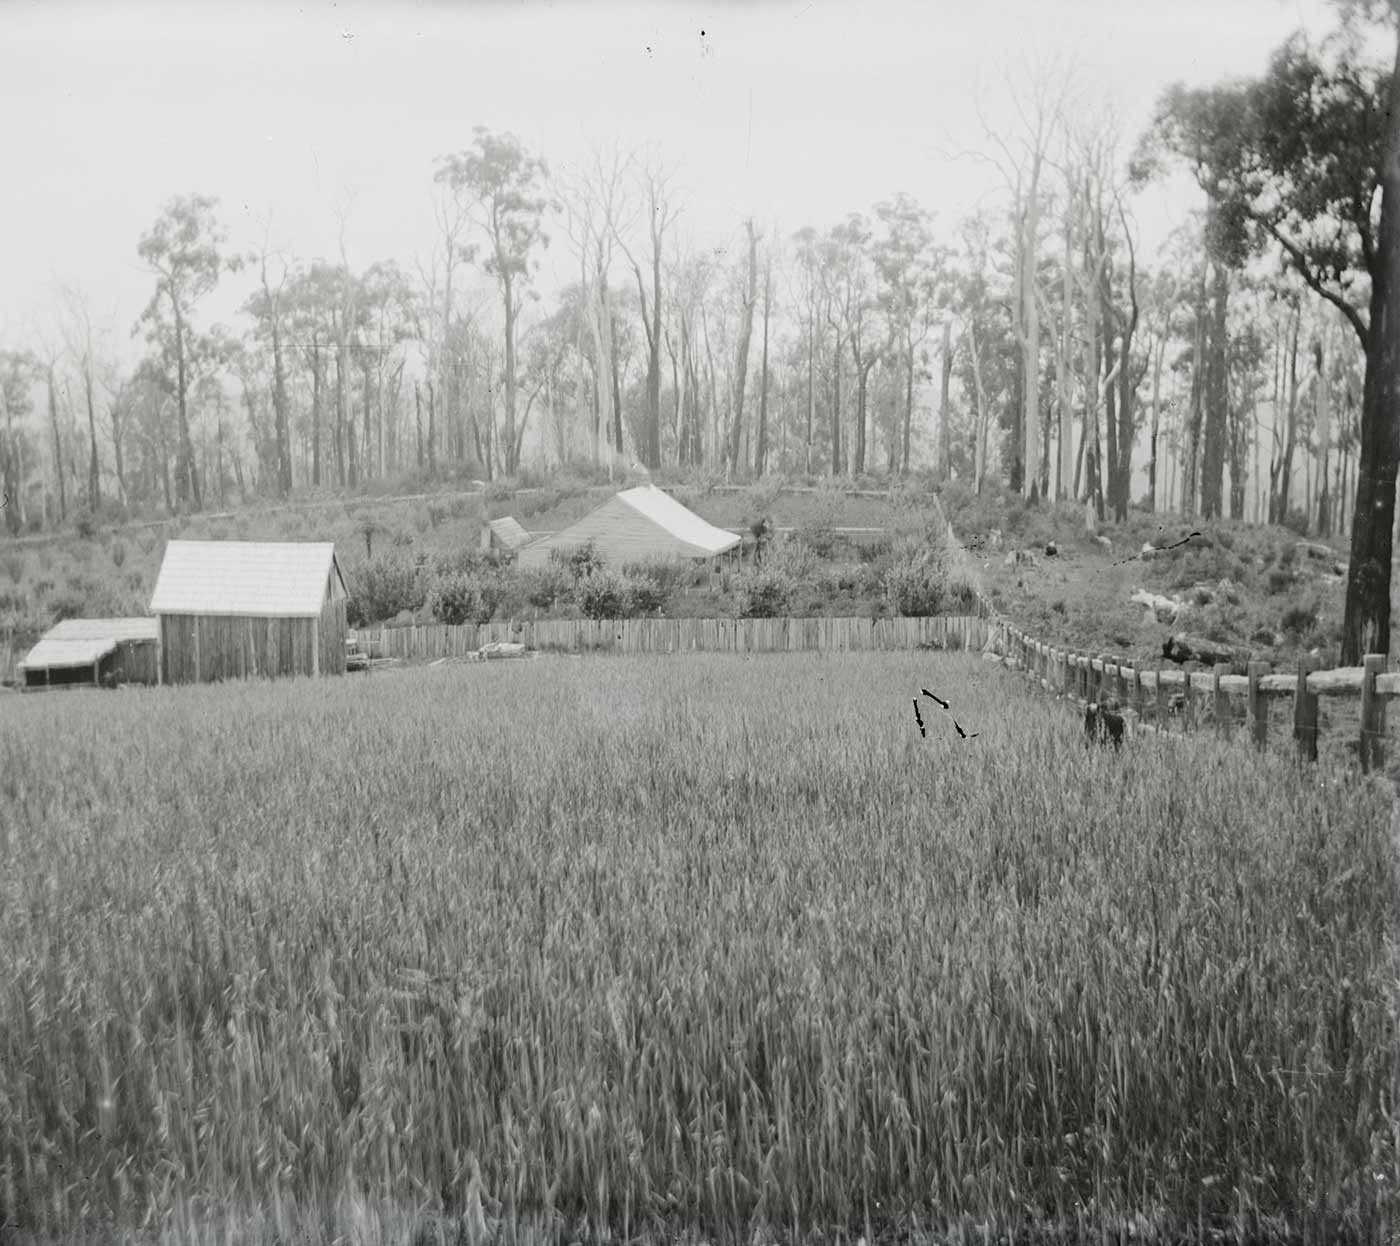 A photographic glass plate negative showing a field of tall grass with buildings and a wire fence visible in the background. The left side of the negative is damaged and a large section on the negative has peeled off the glass. - click to view larger image